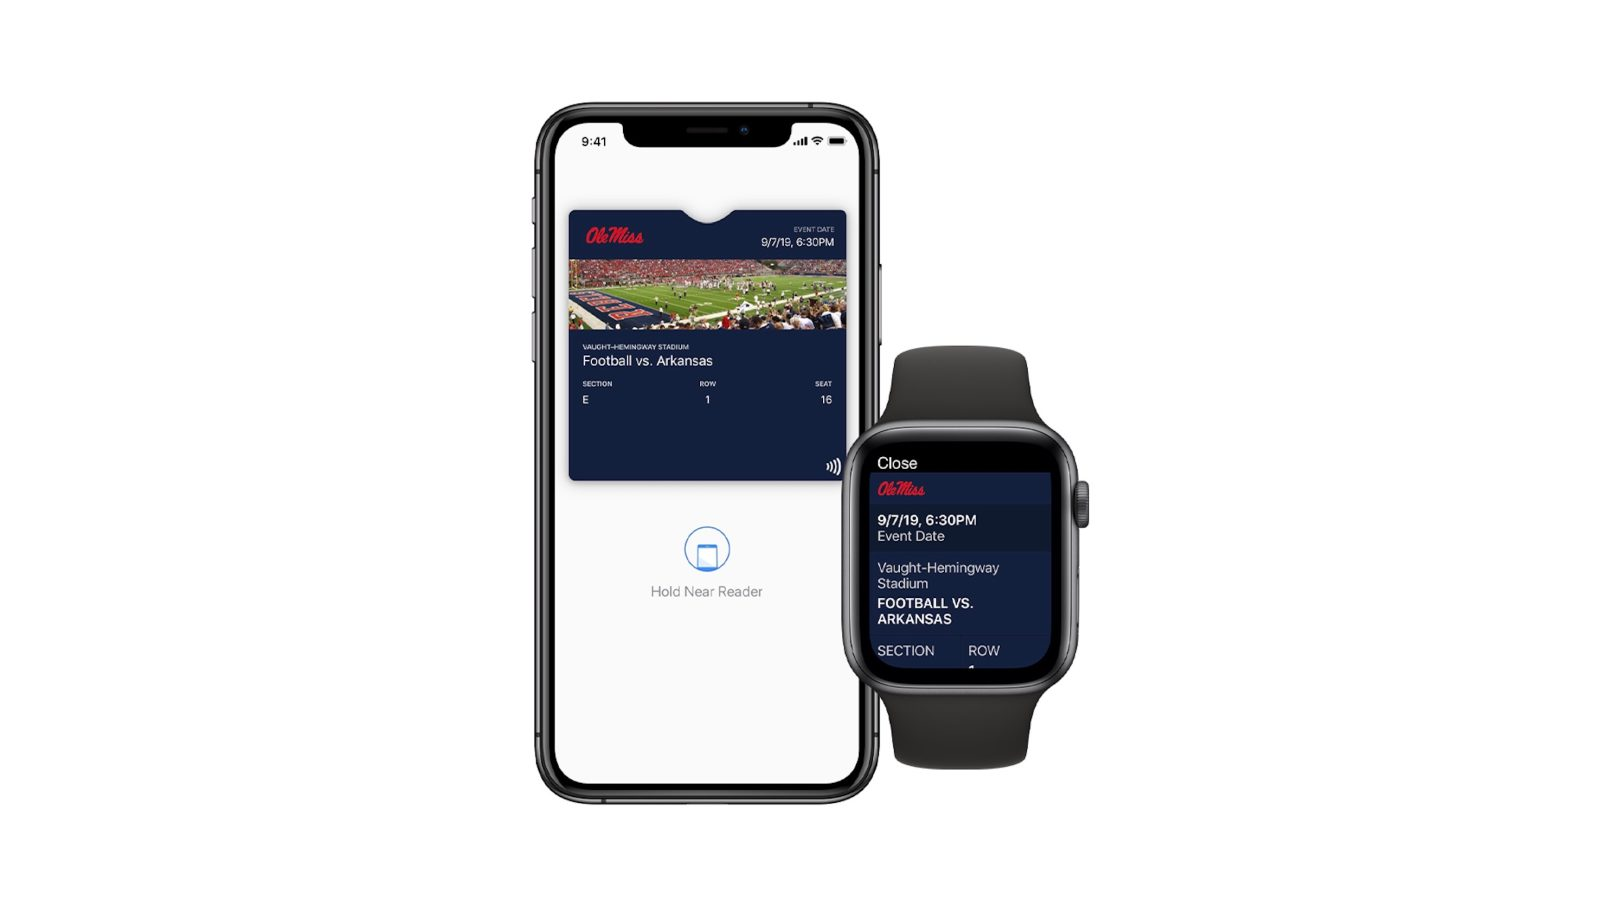 College football ticketing service announces support for contactless entry with Apple Wallet